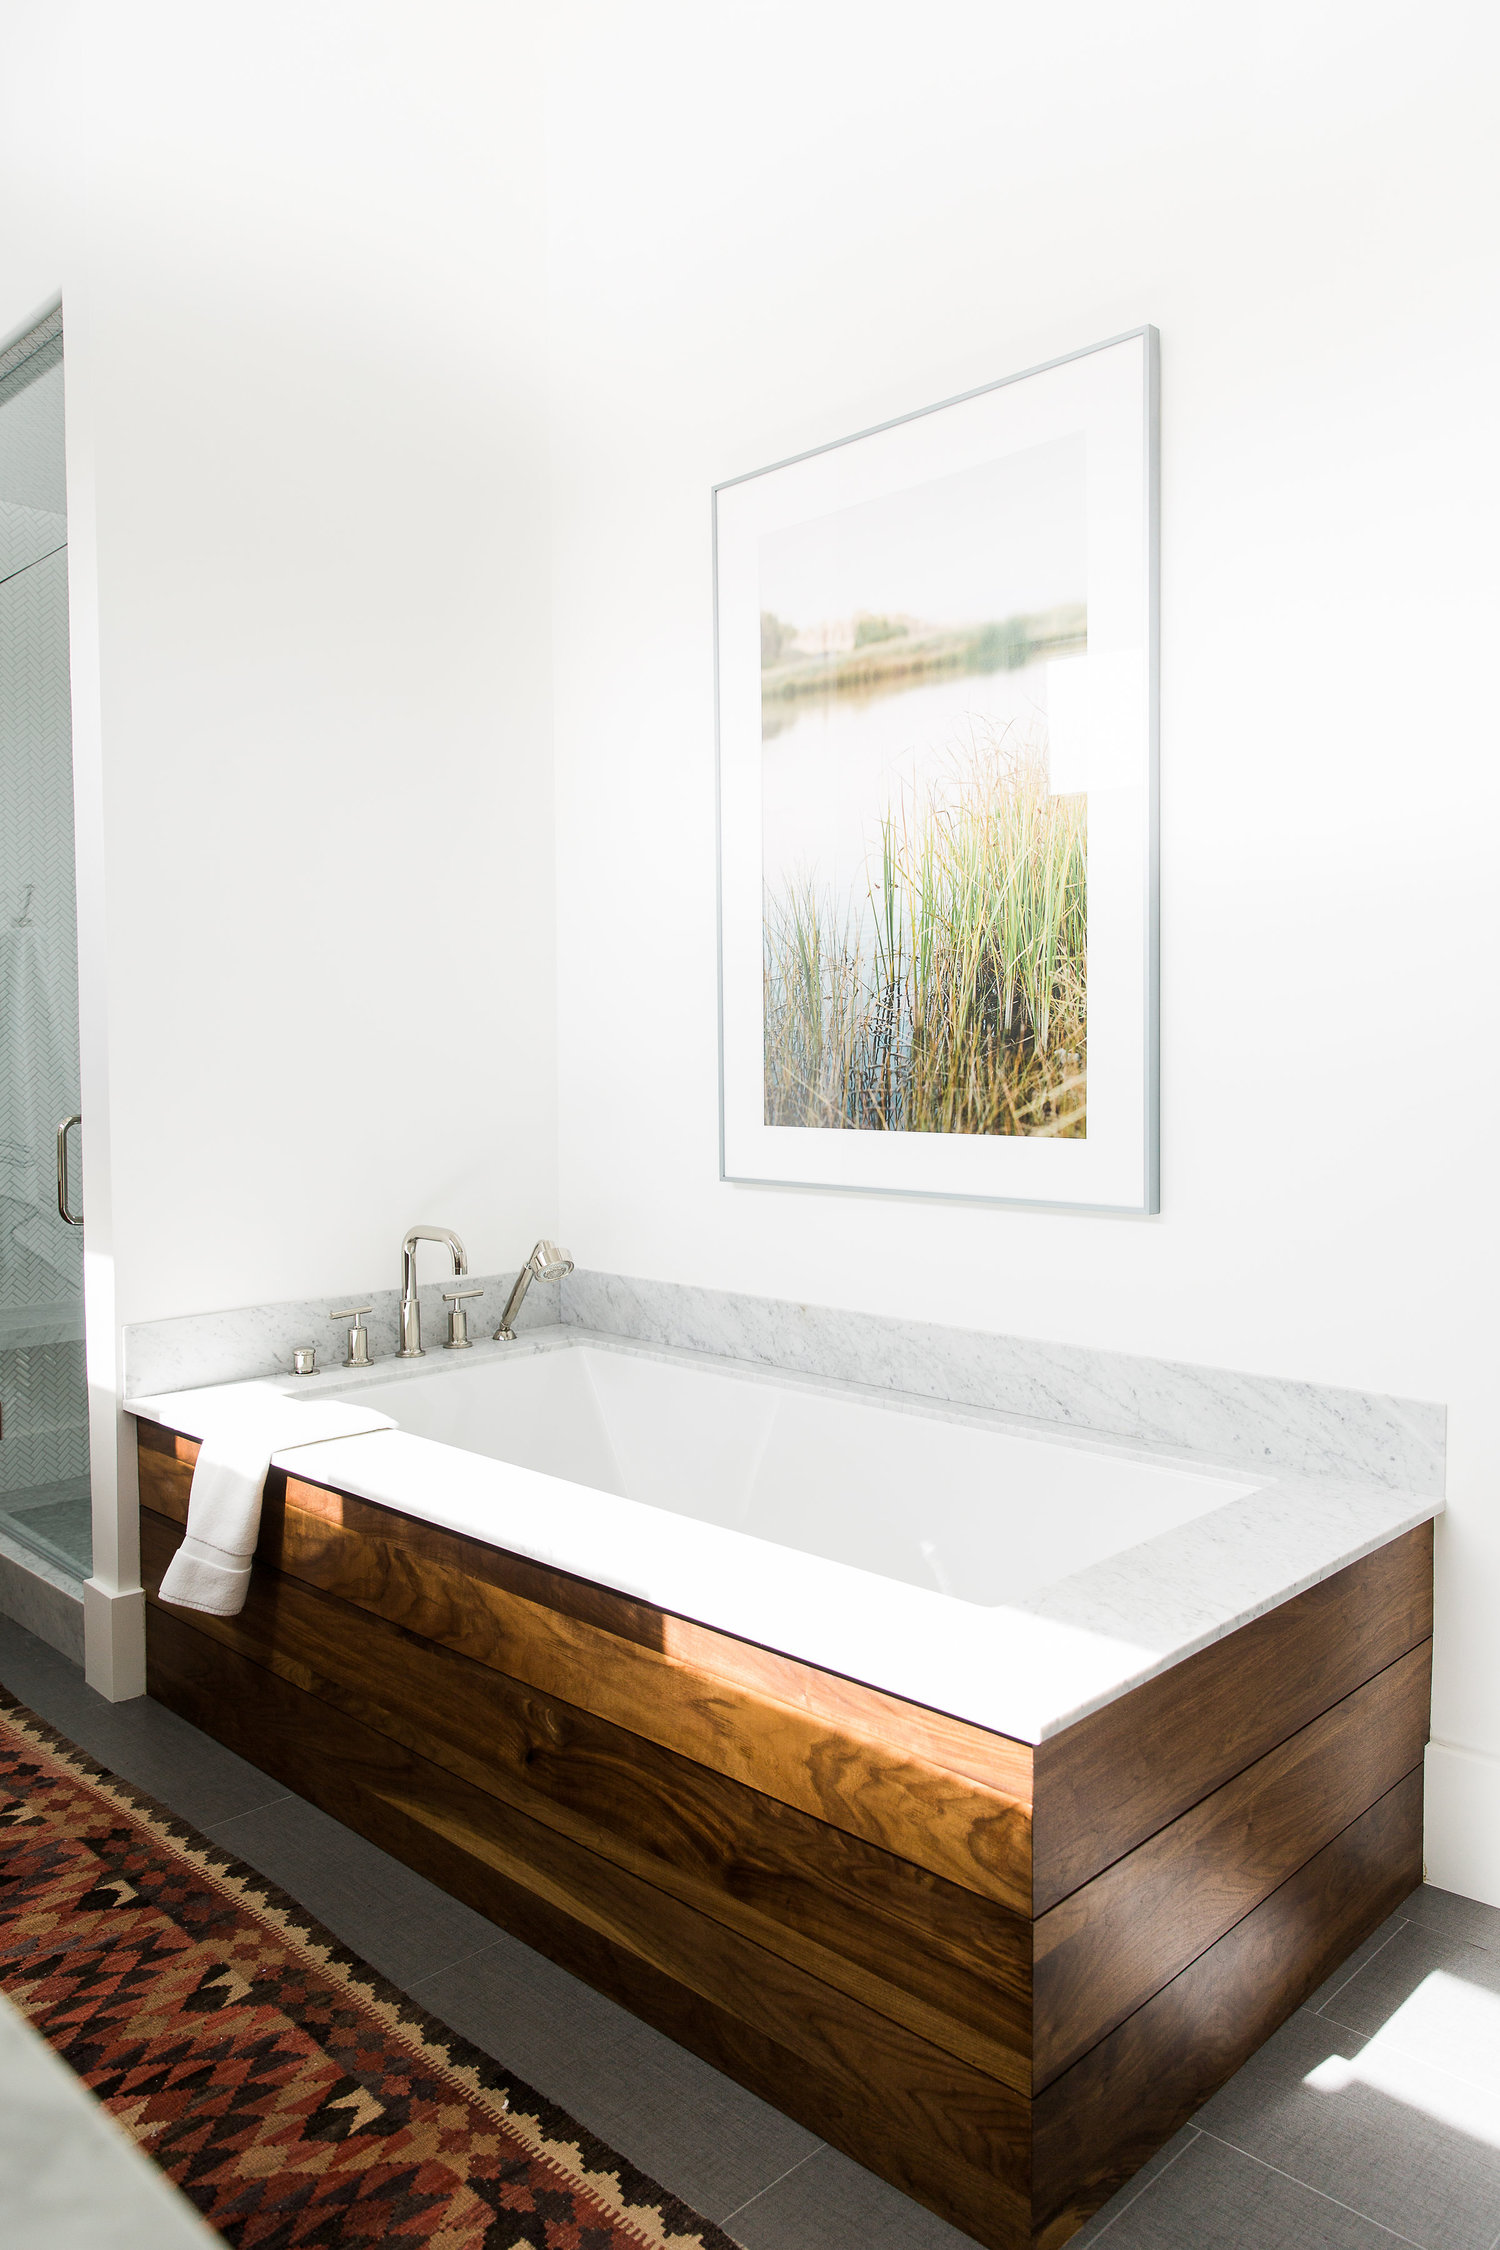 Large tub with wooden siding